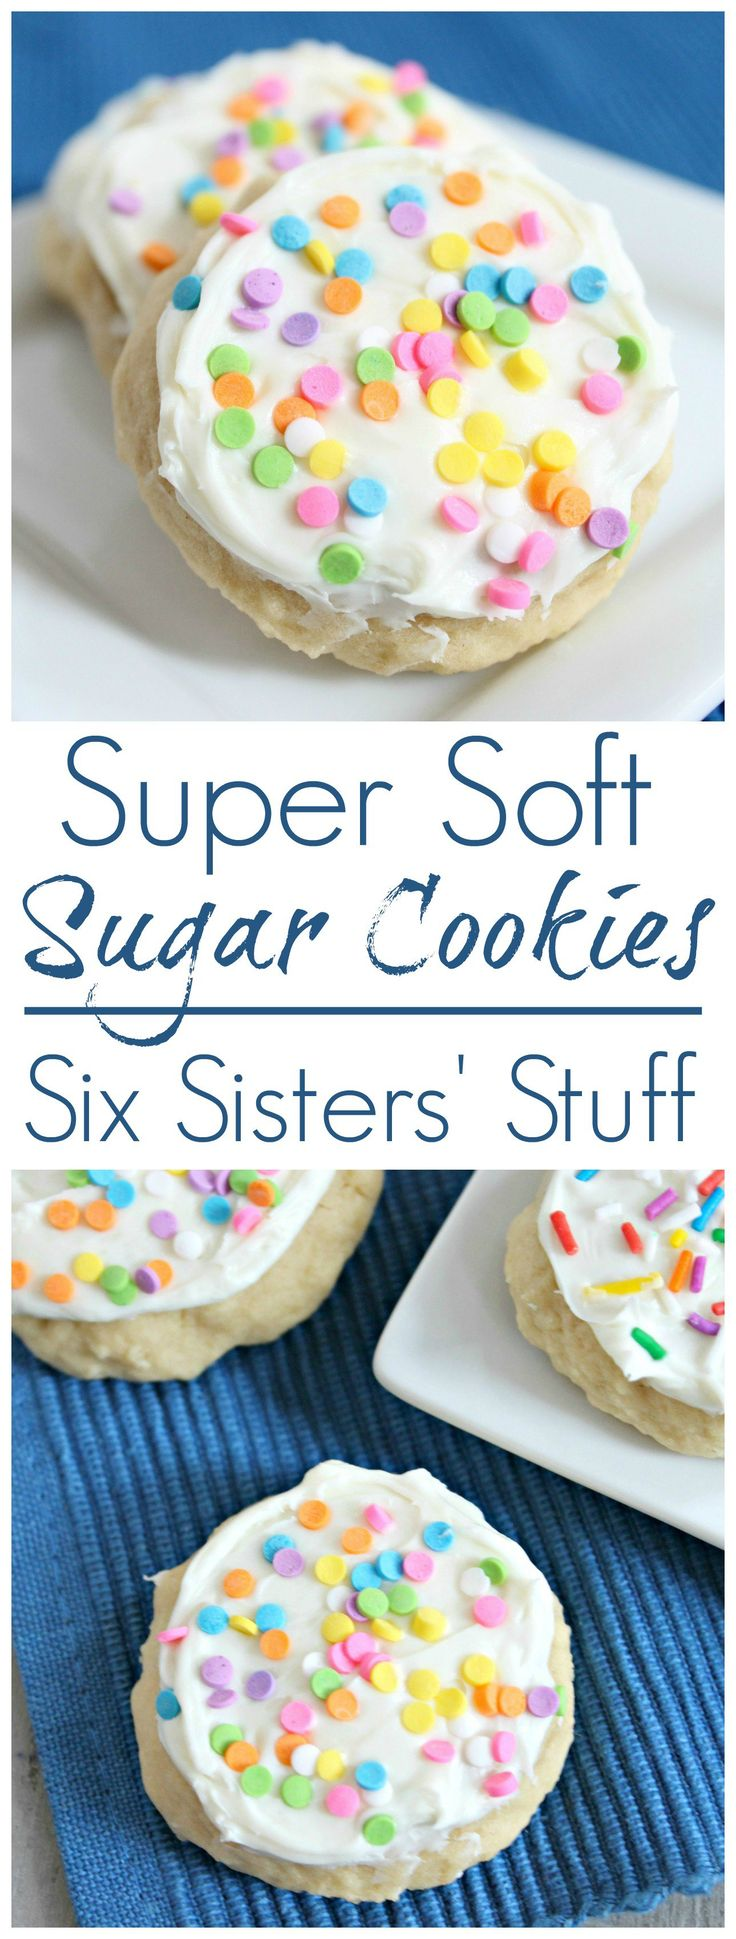 Super Soft Sugar Cookies from Six Sisters Stuff